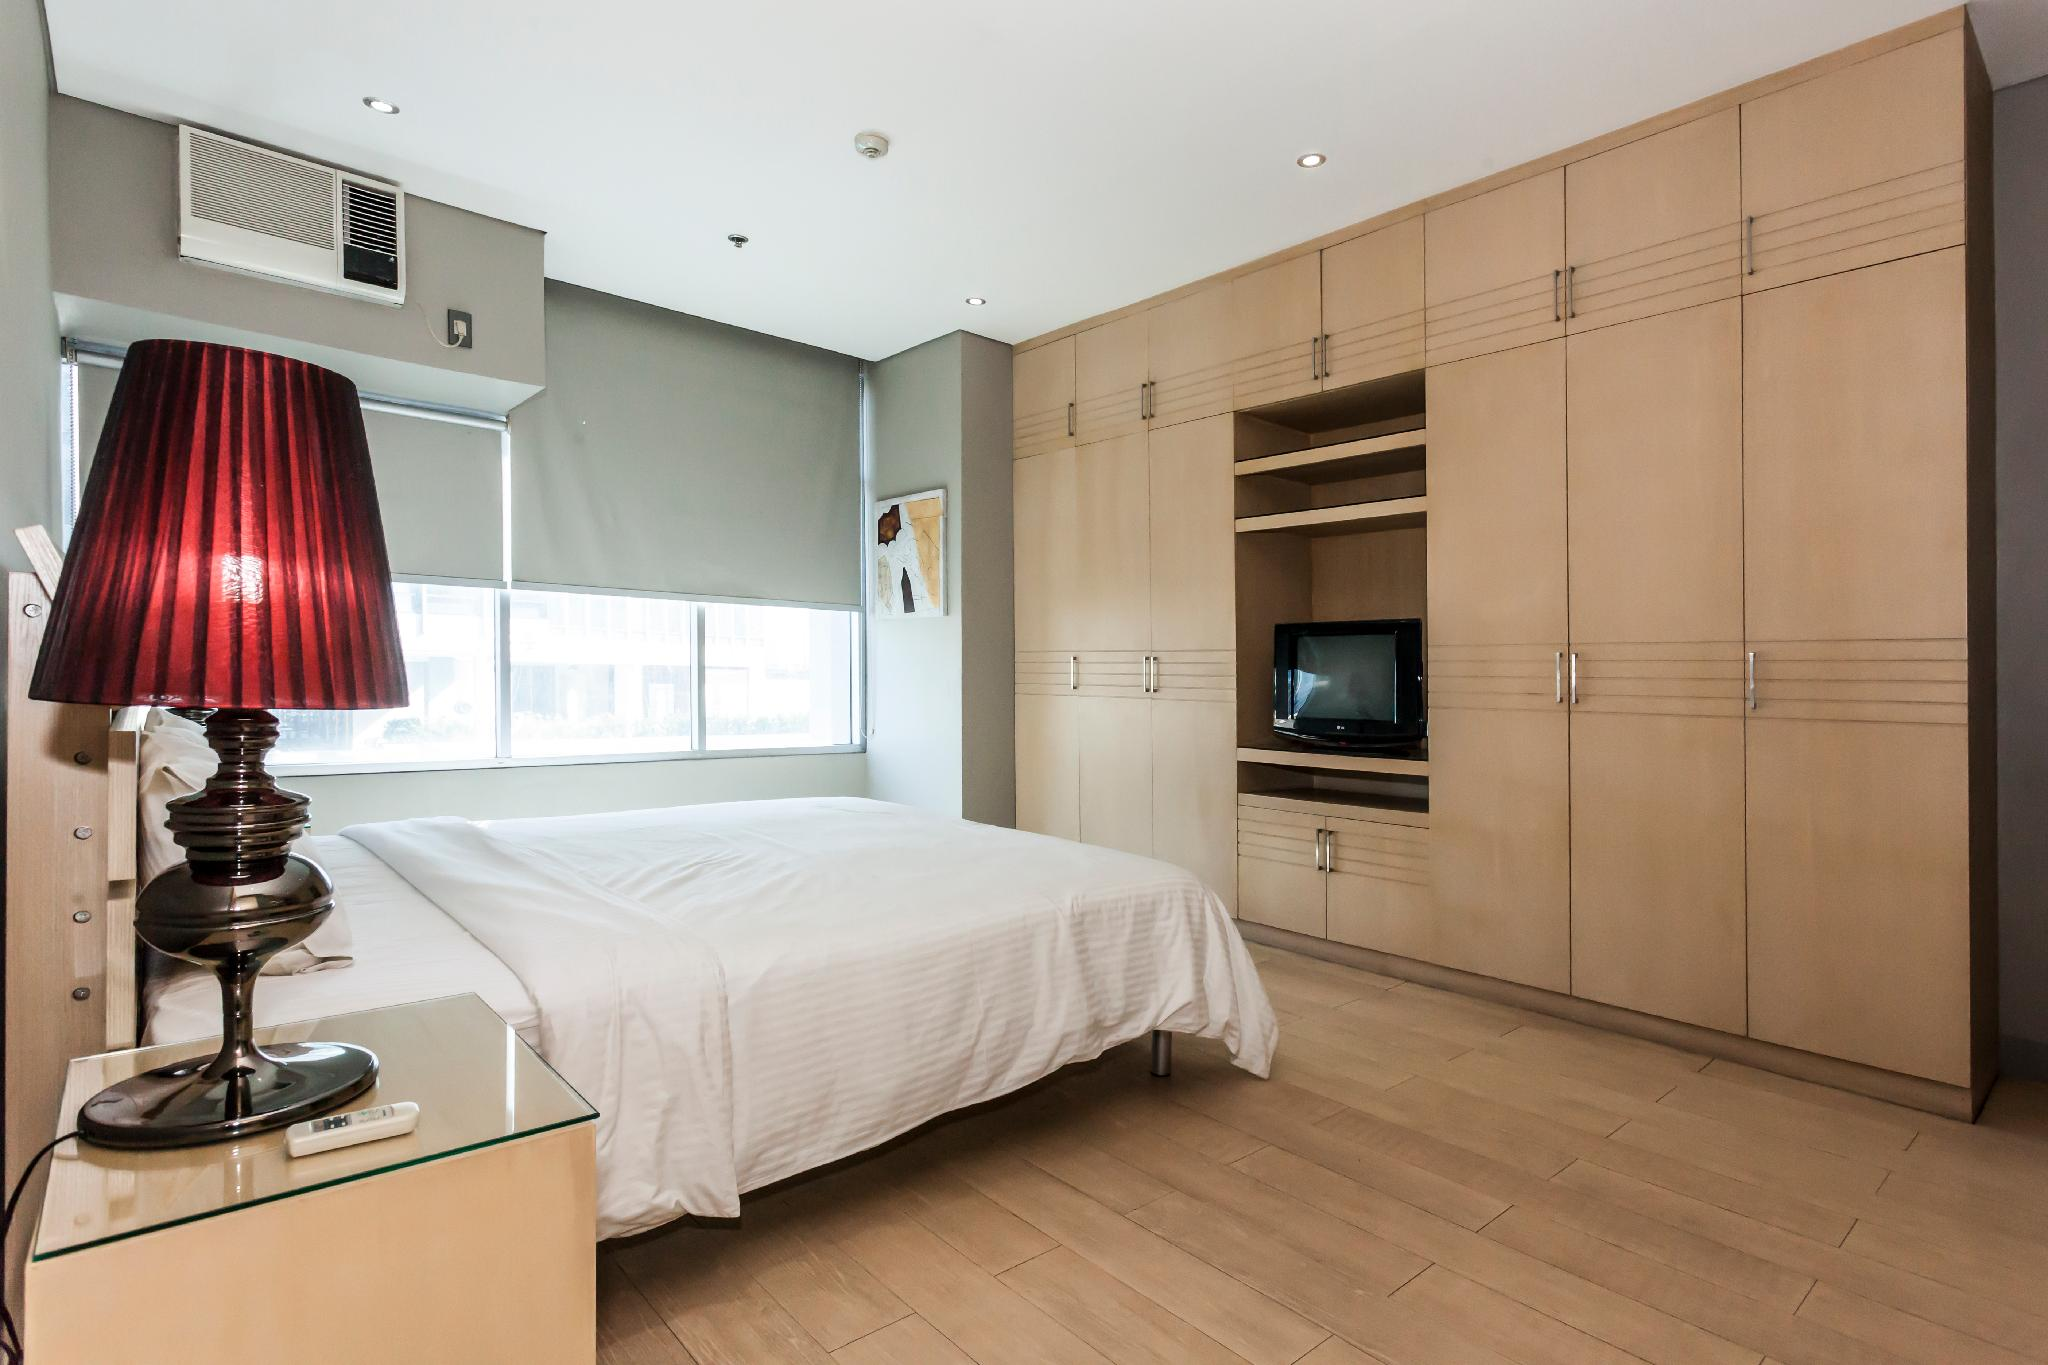 The Luxe Spacious 3 Bedroom